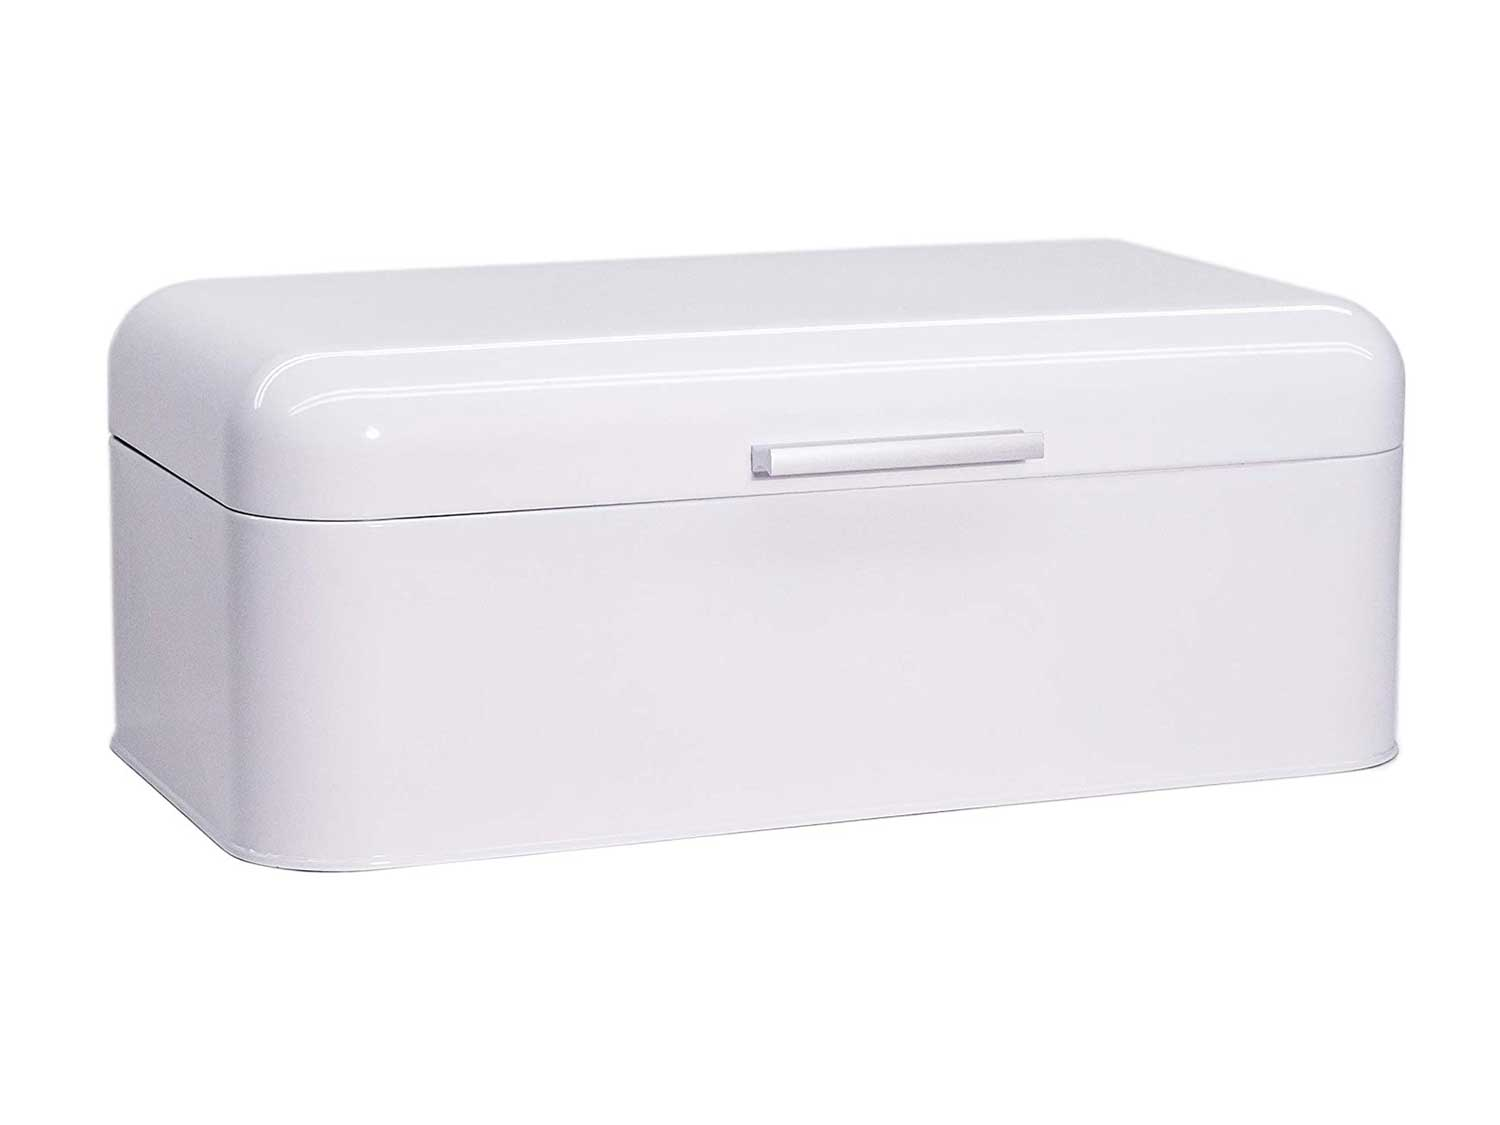 Large Glossy White Bread Box - Extra Large Storage Container for Loaves, Bagels, Chips & More: 16.5